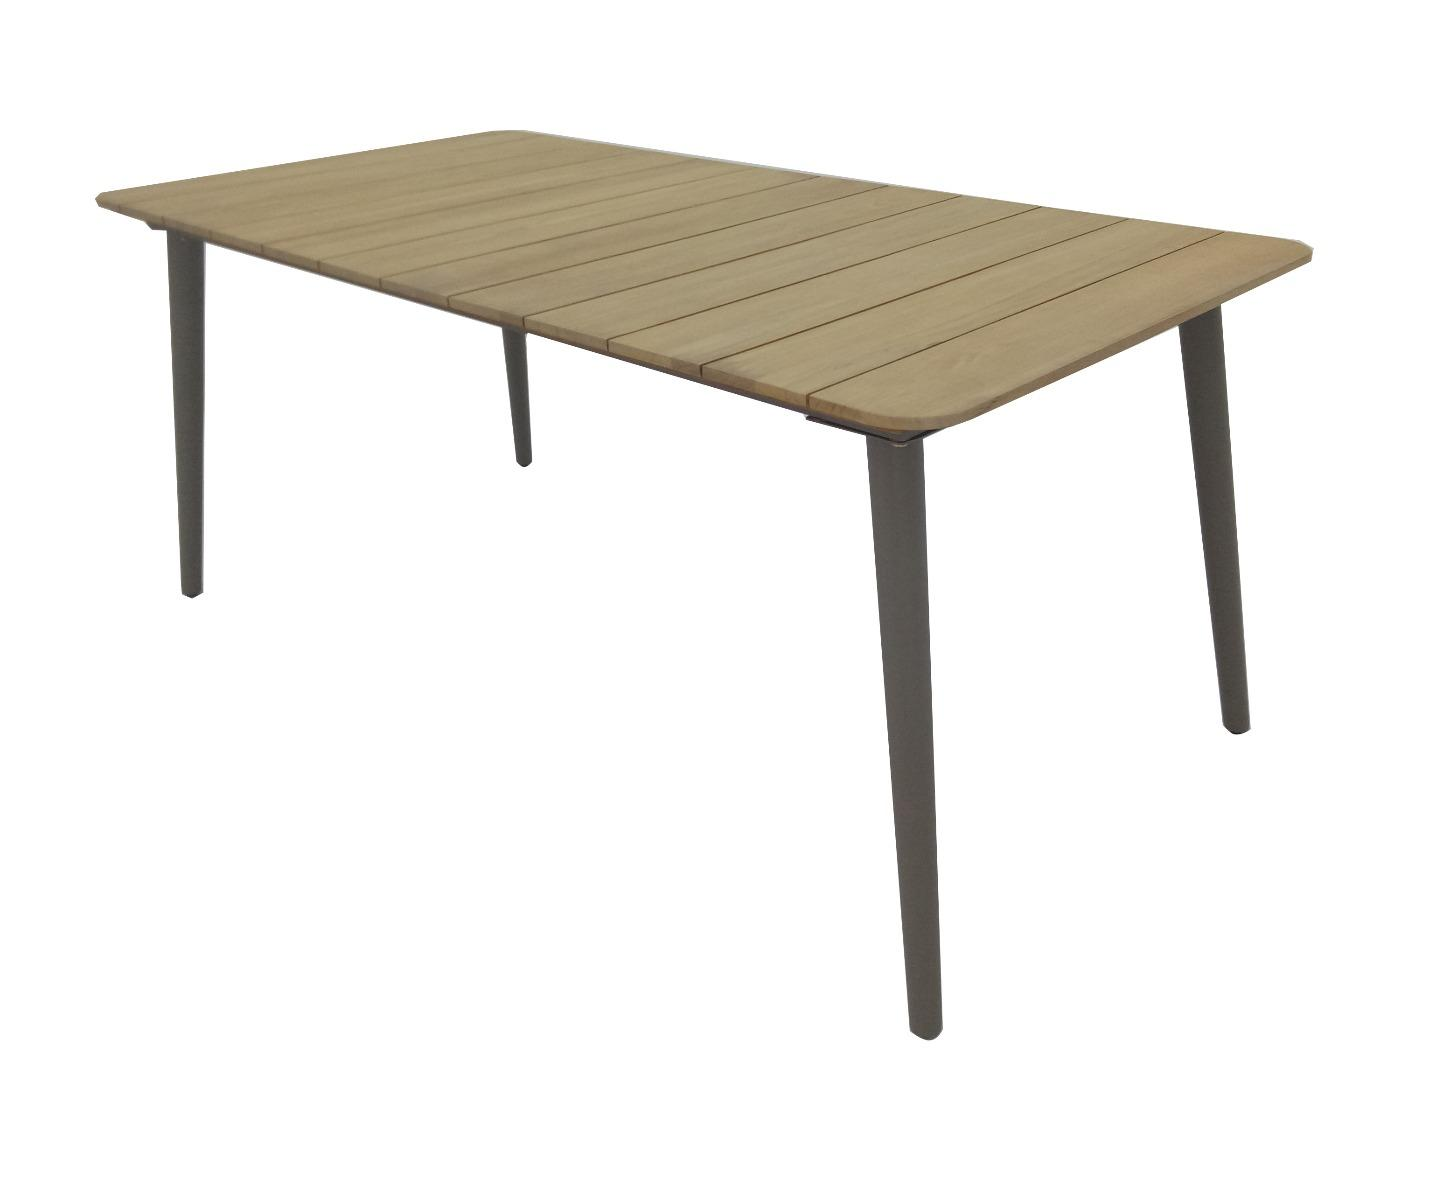 Korting Reims dining table 220x90x76cm